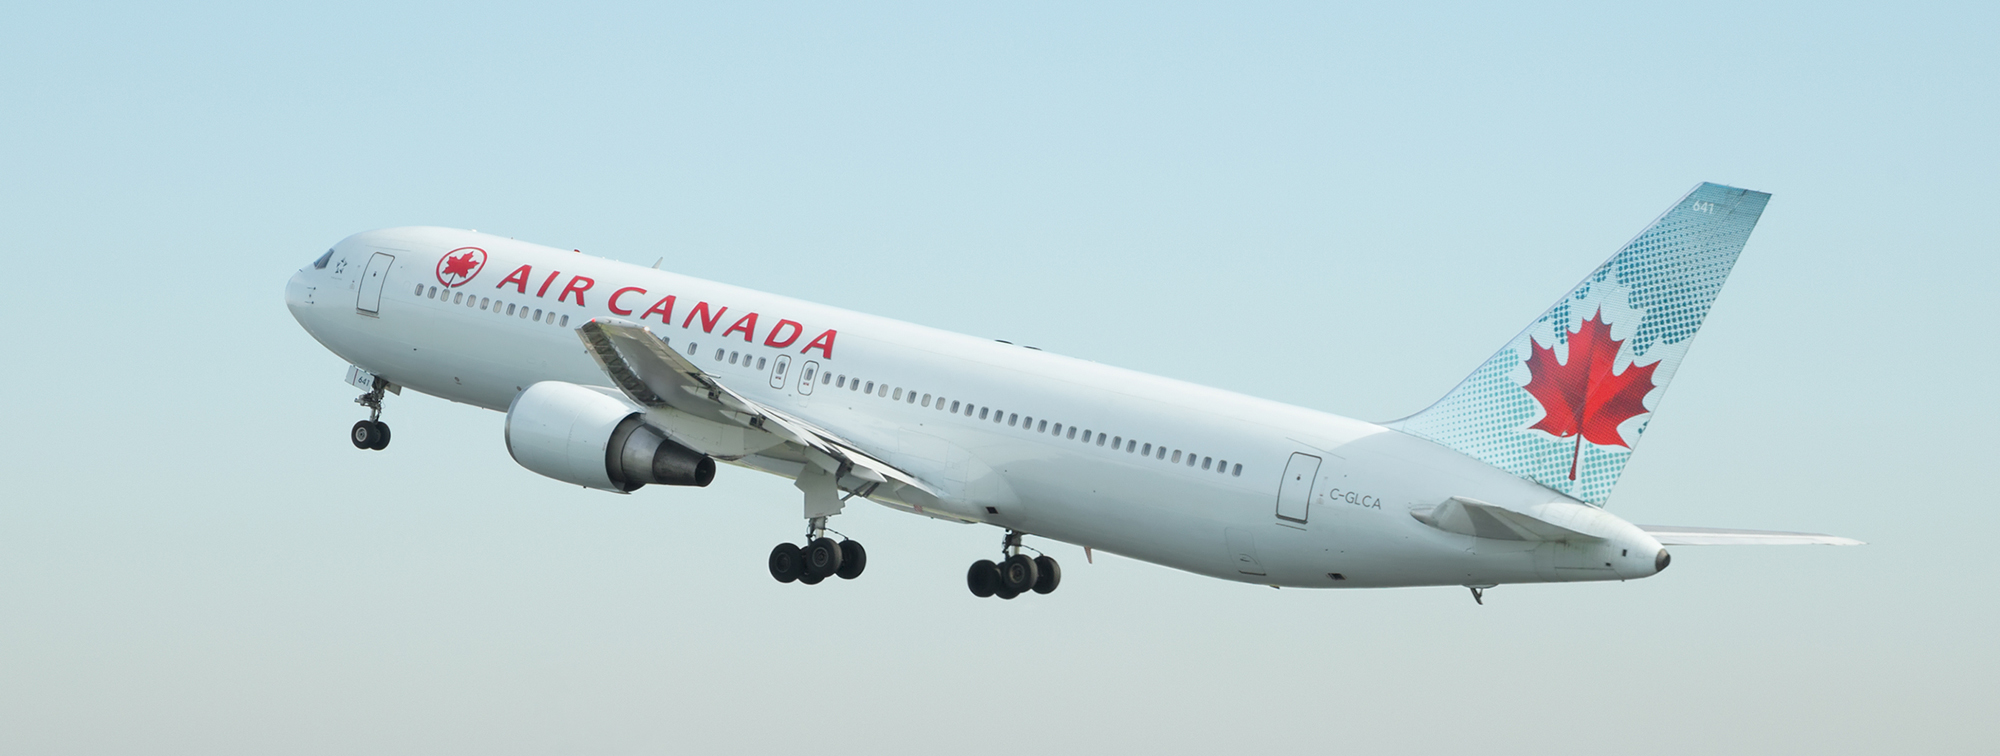 Air Canada Airlines Flights